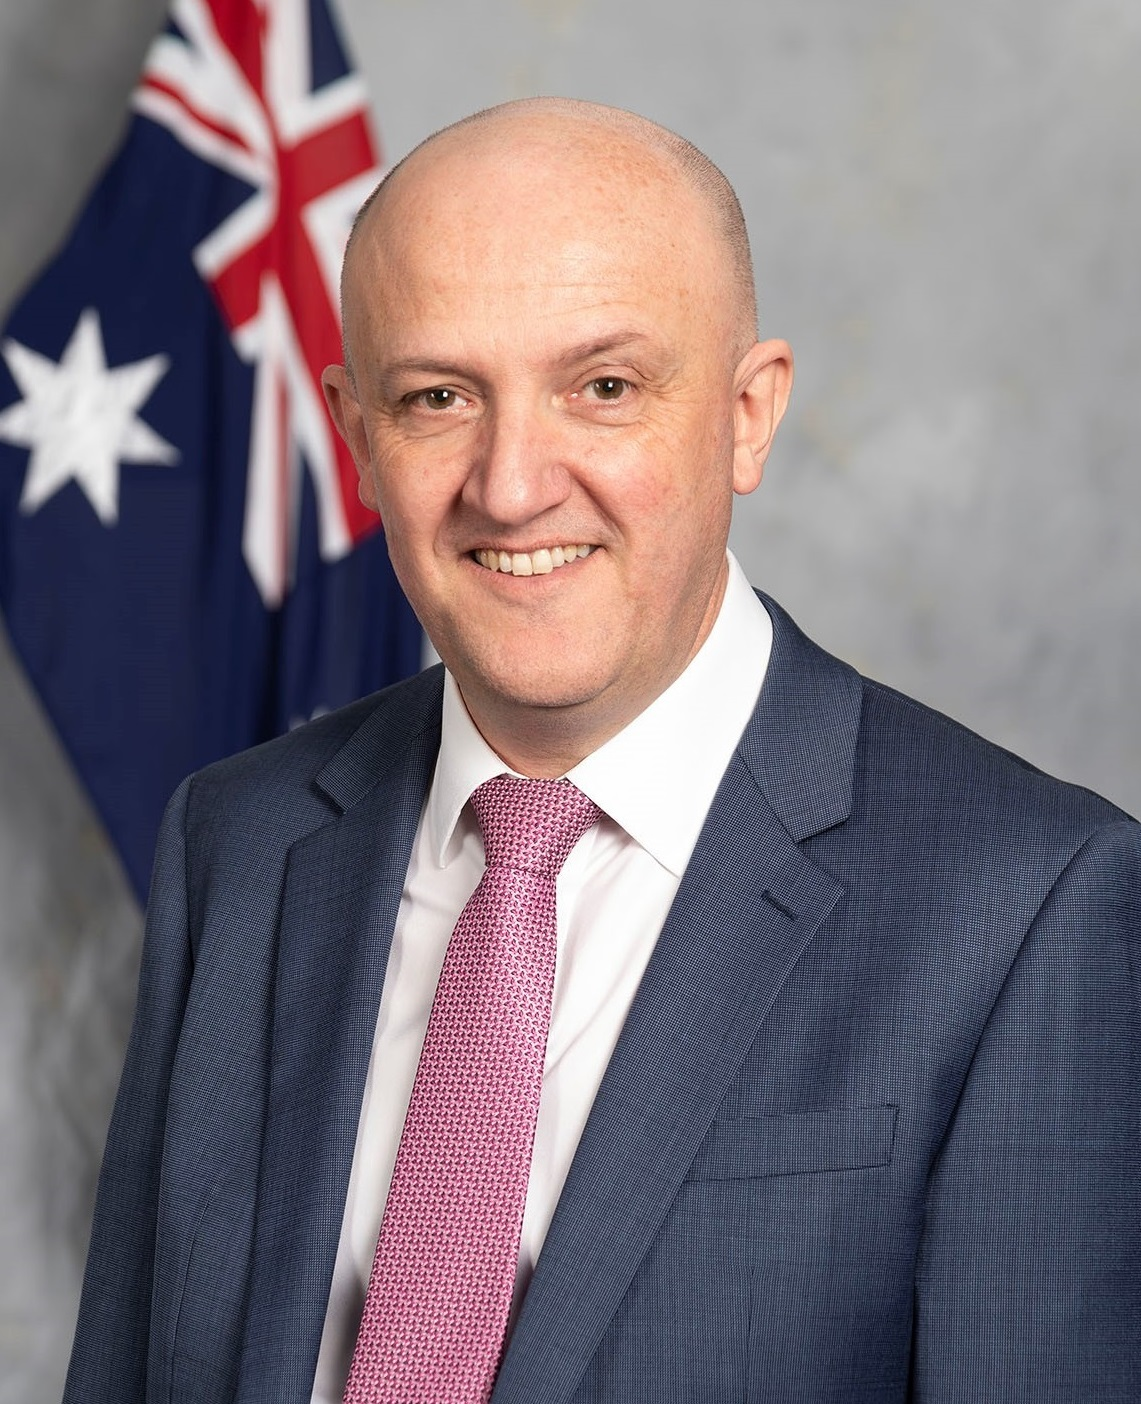 Director-General of Security, Mike Burgess